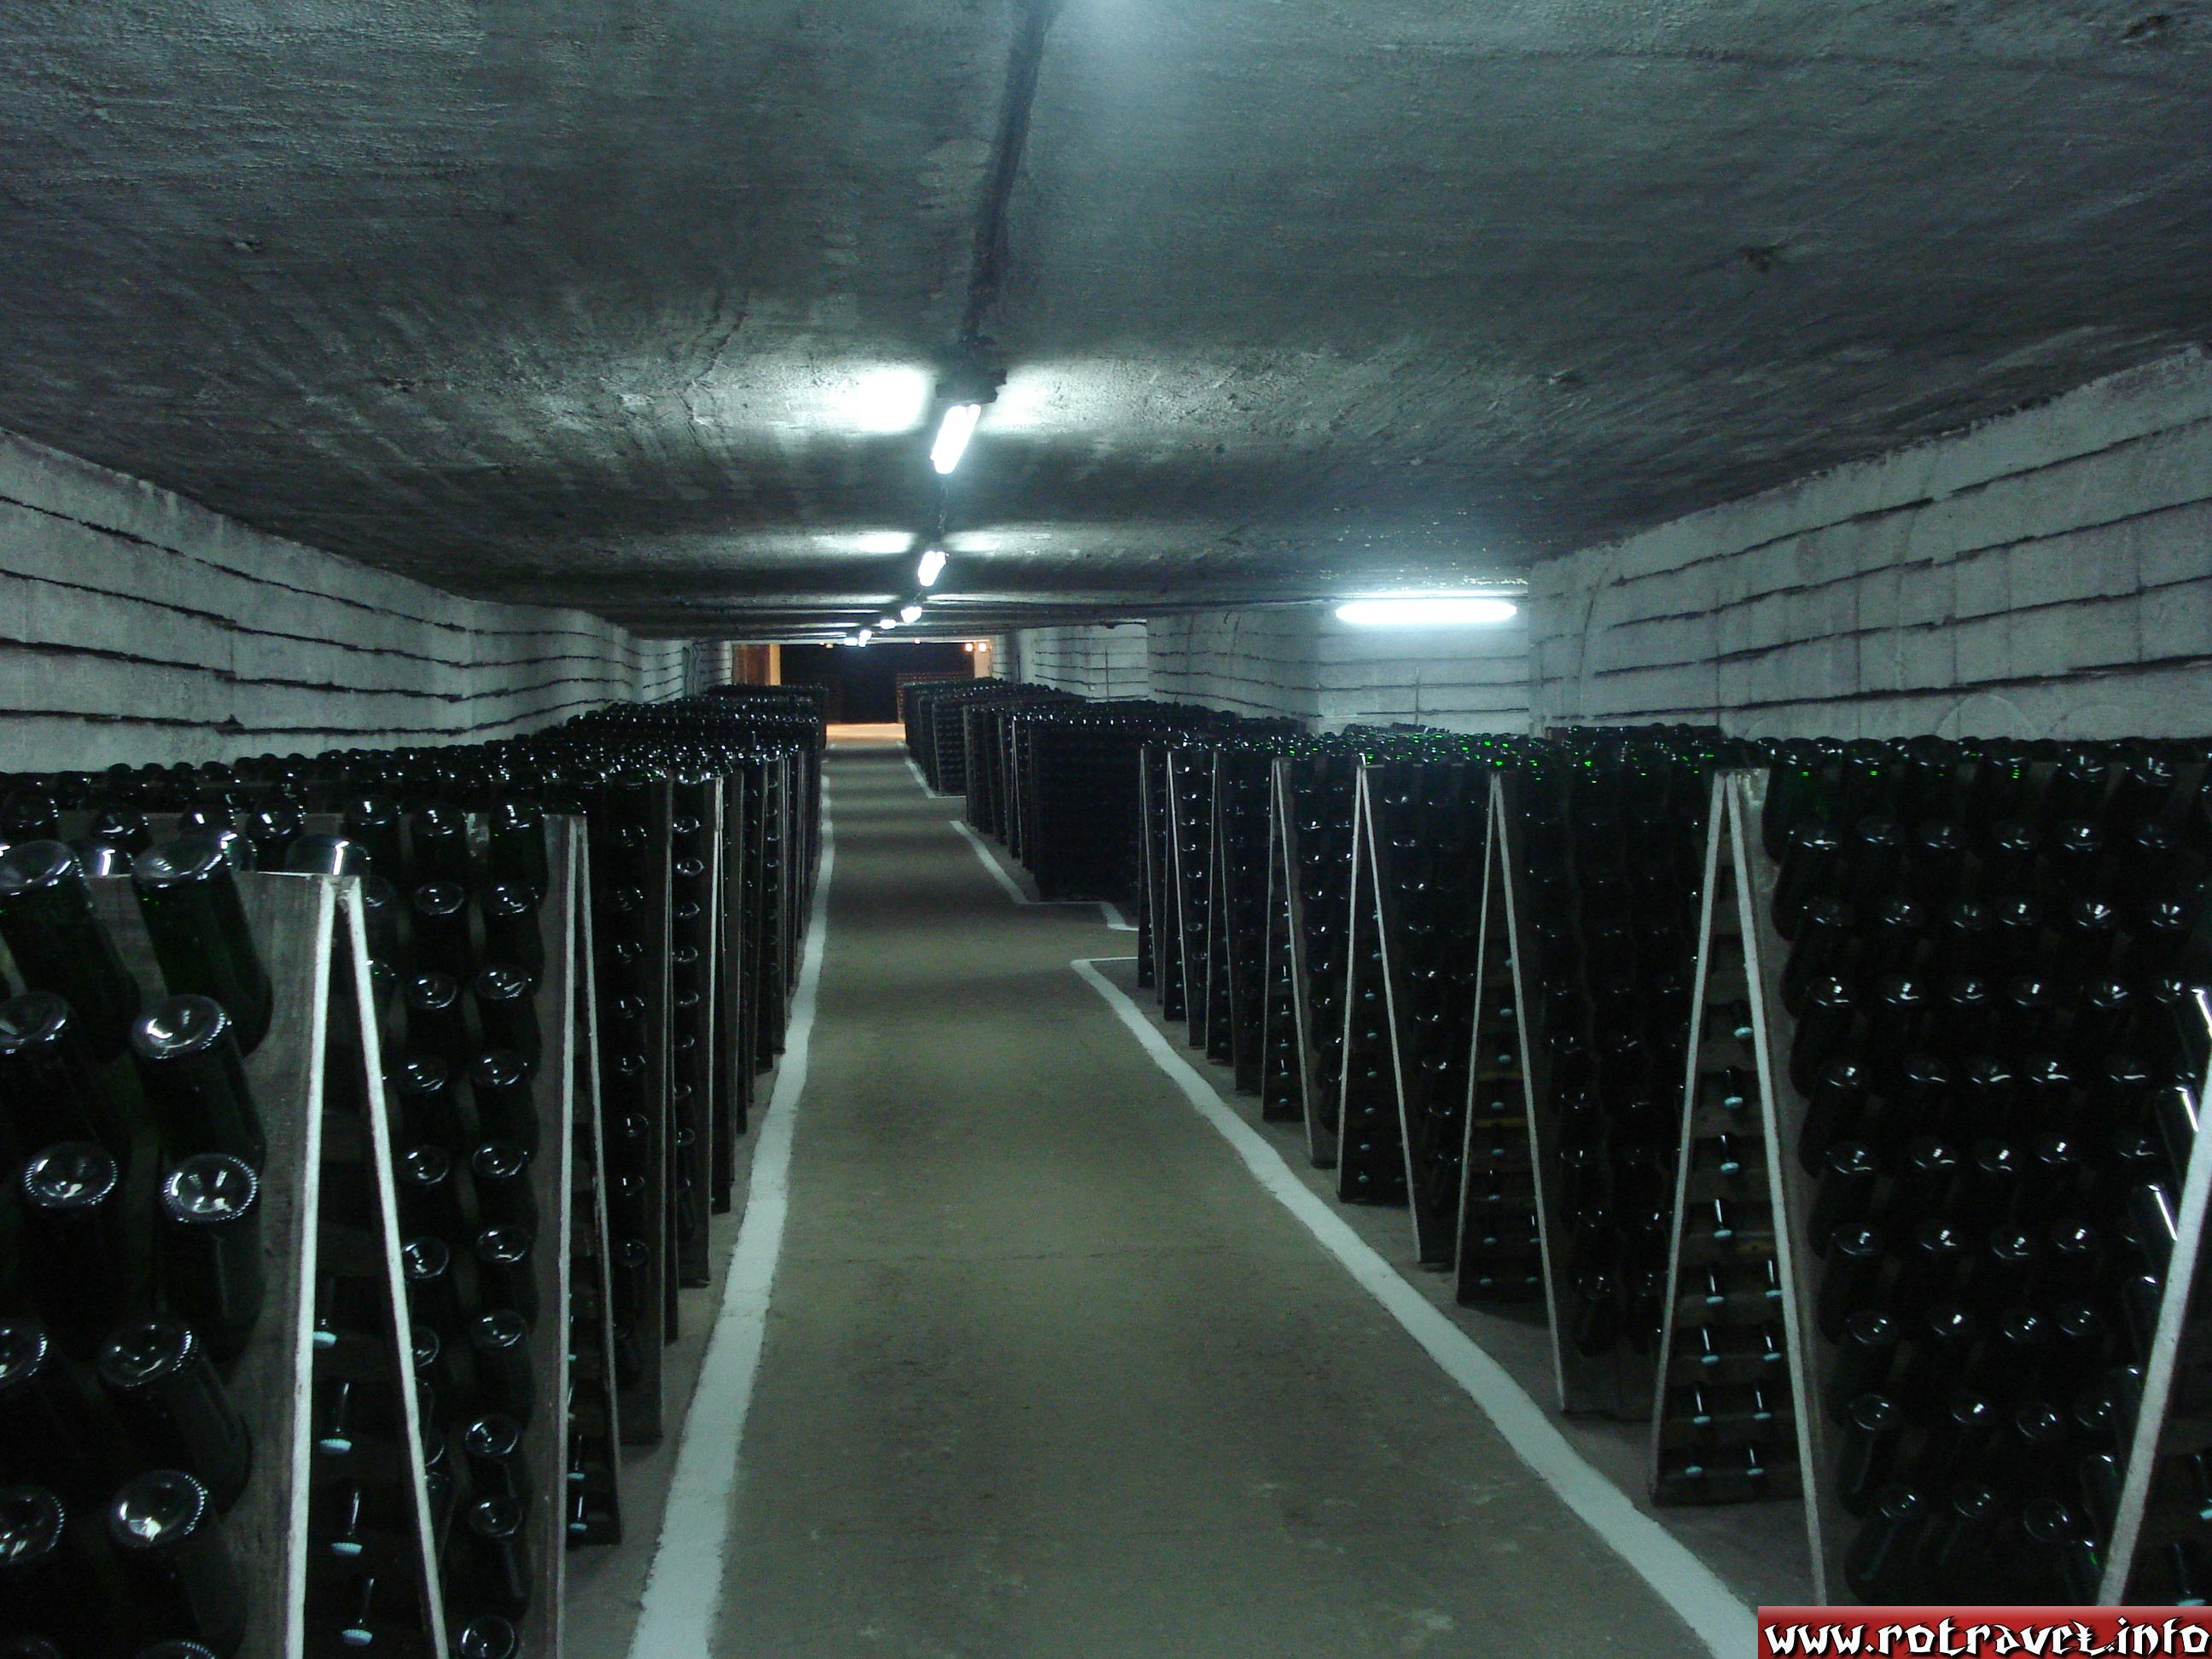 The cellar where the Champagne is kept, place located on Champagne's Boulevard.